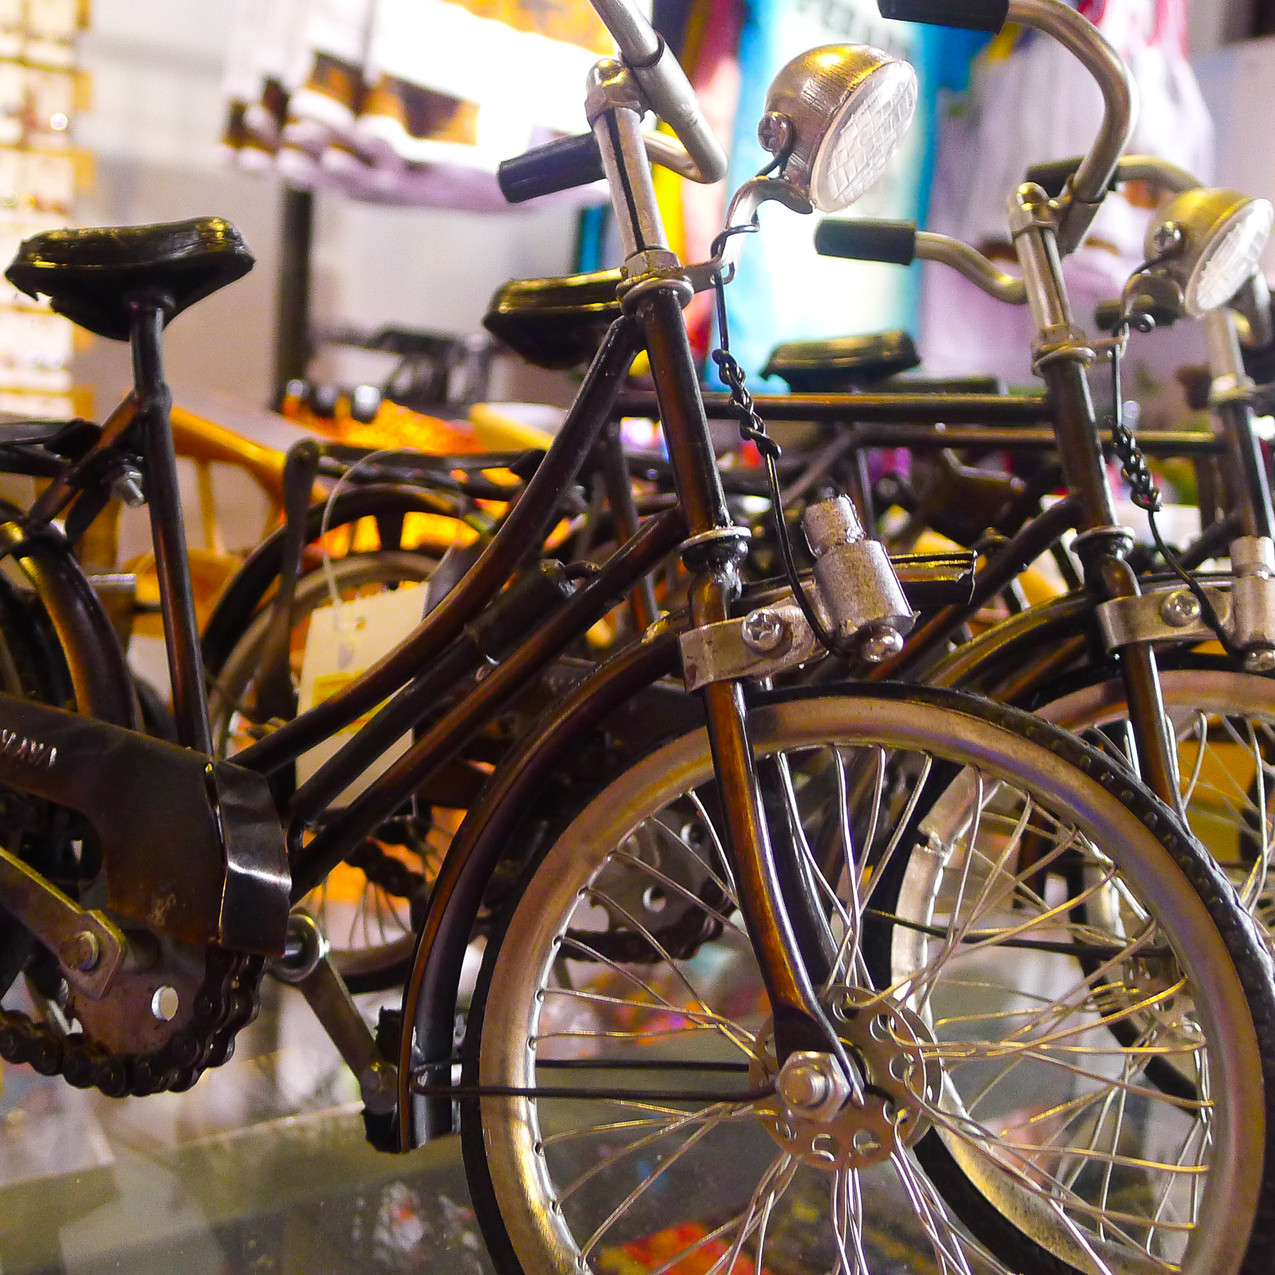 Cute bicycle souvenirs